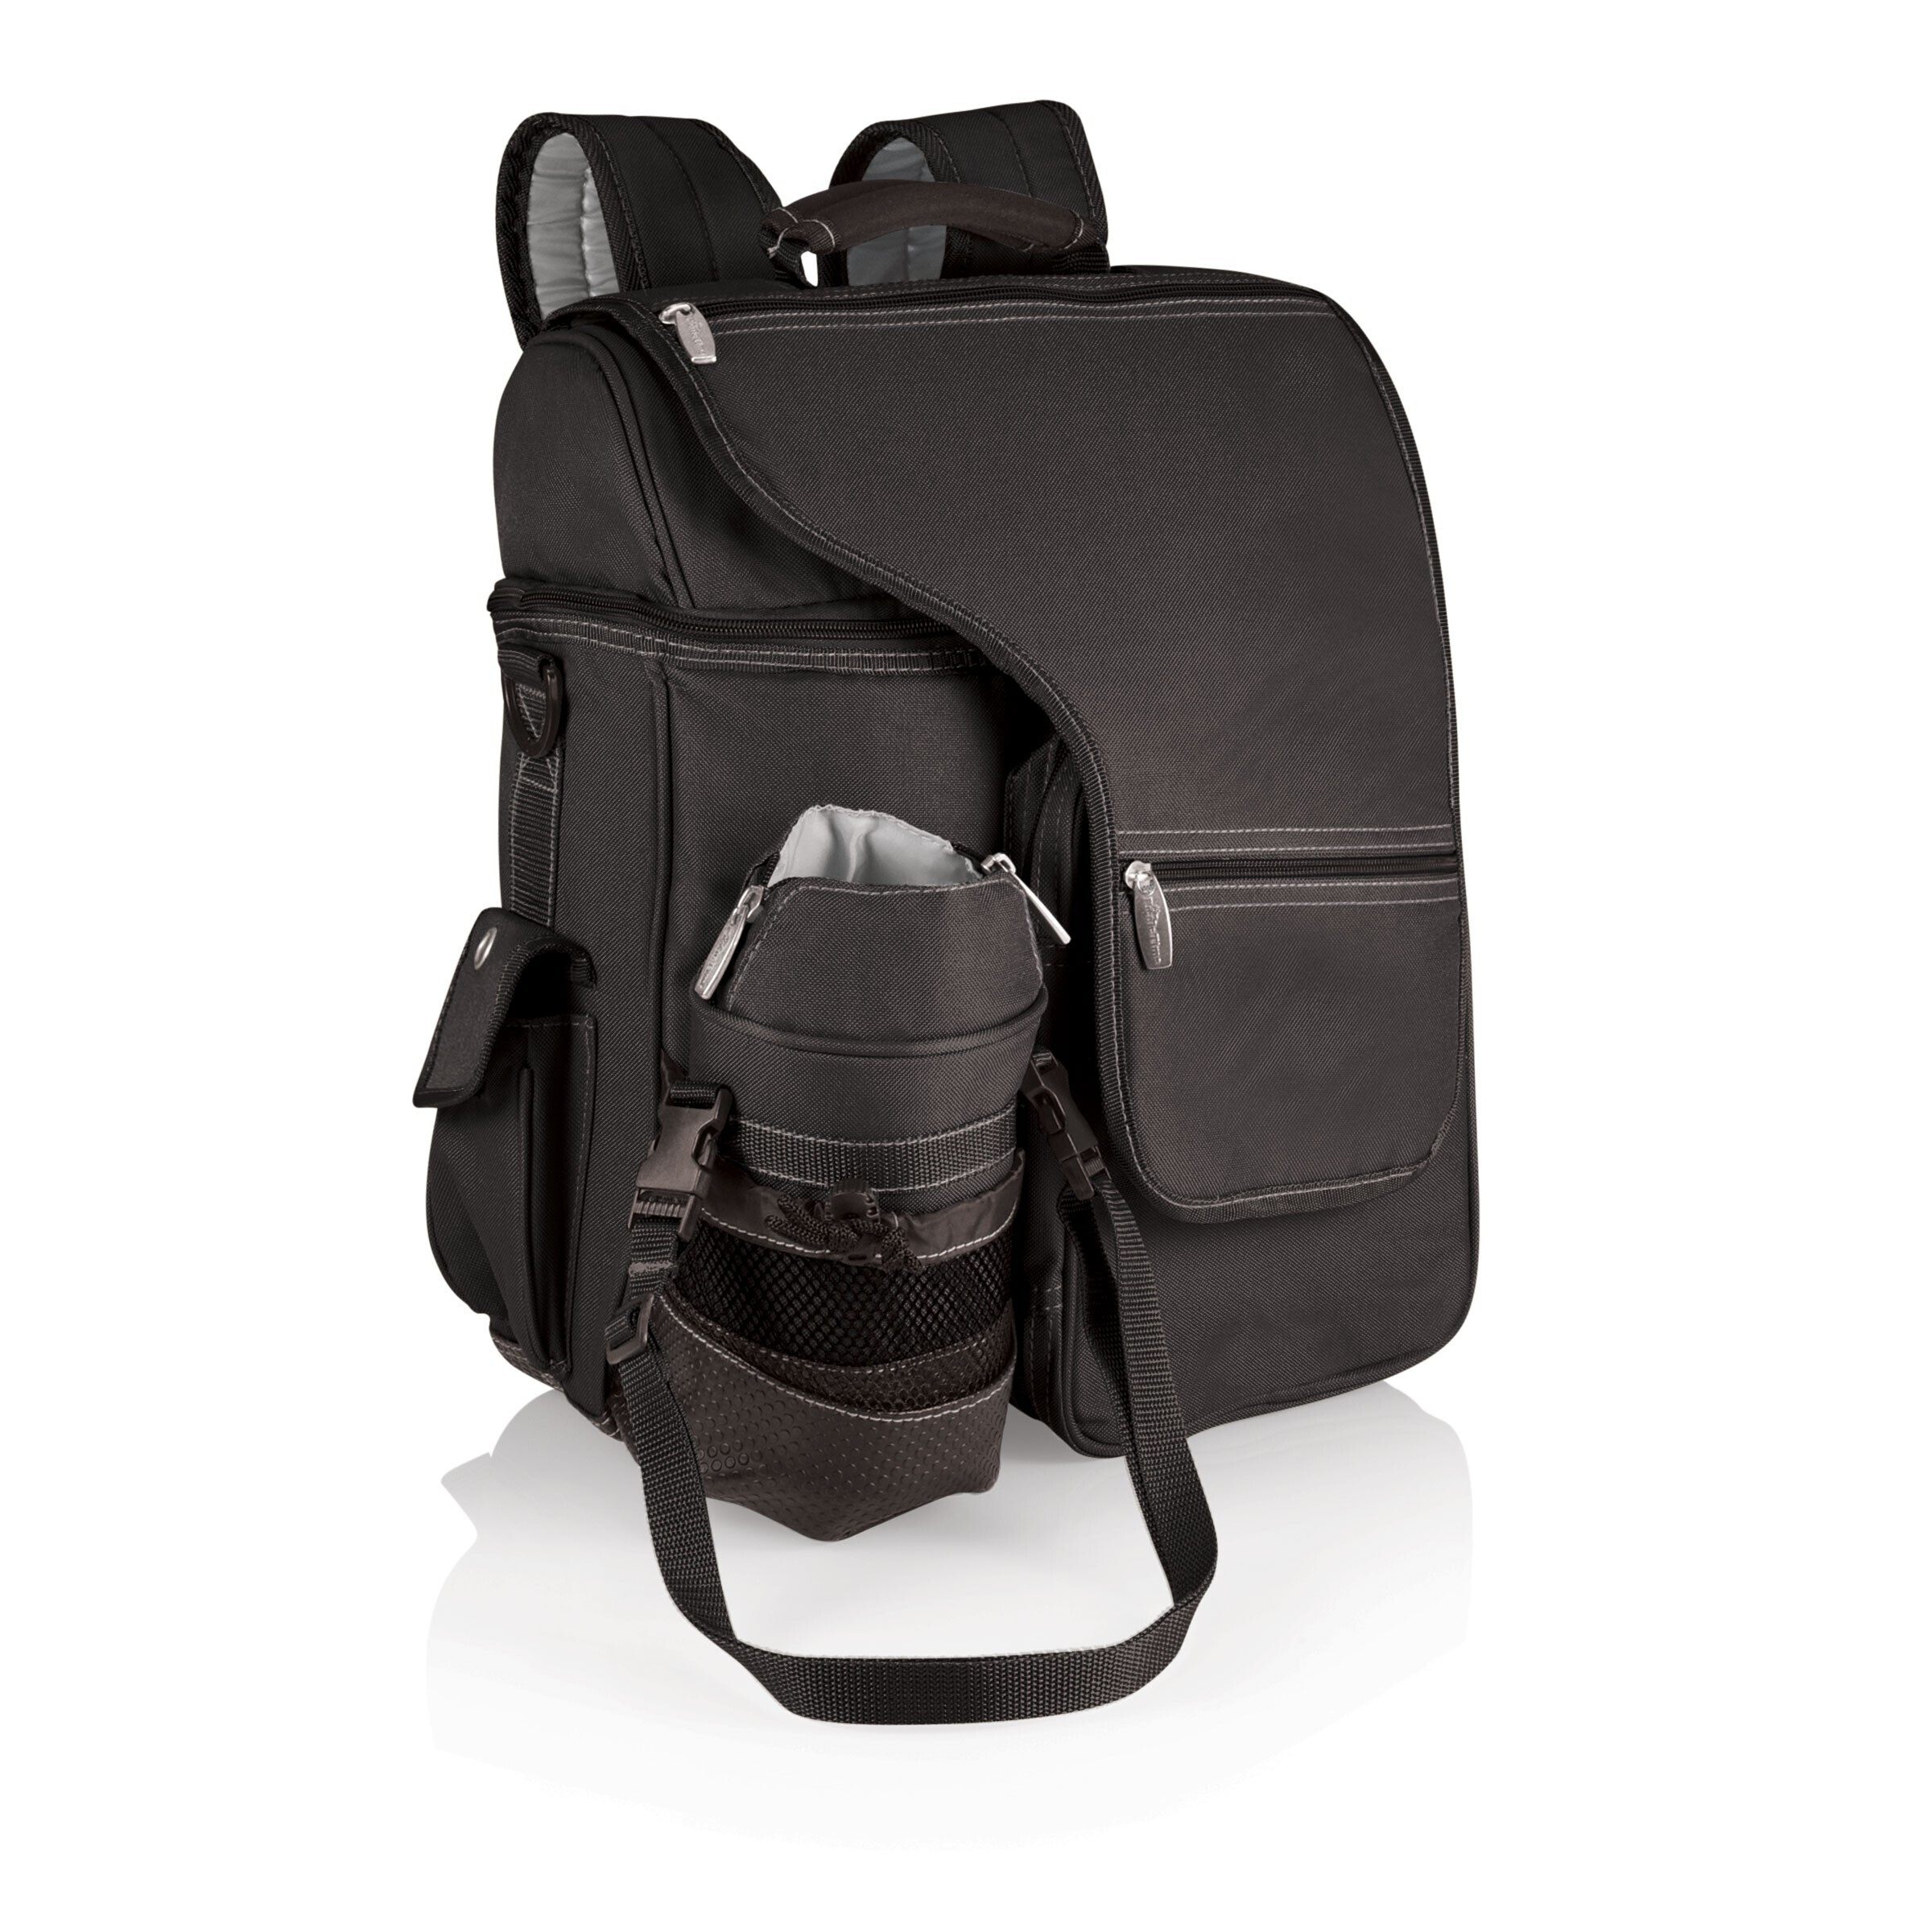 Bailey Backpack Cooler